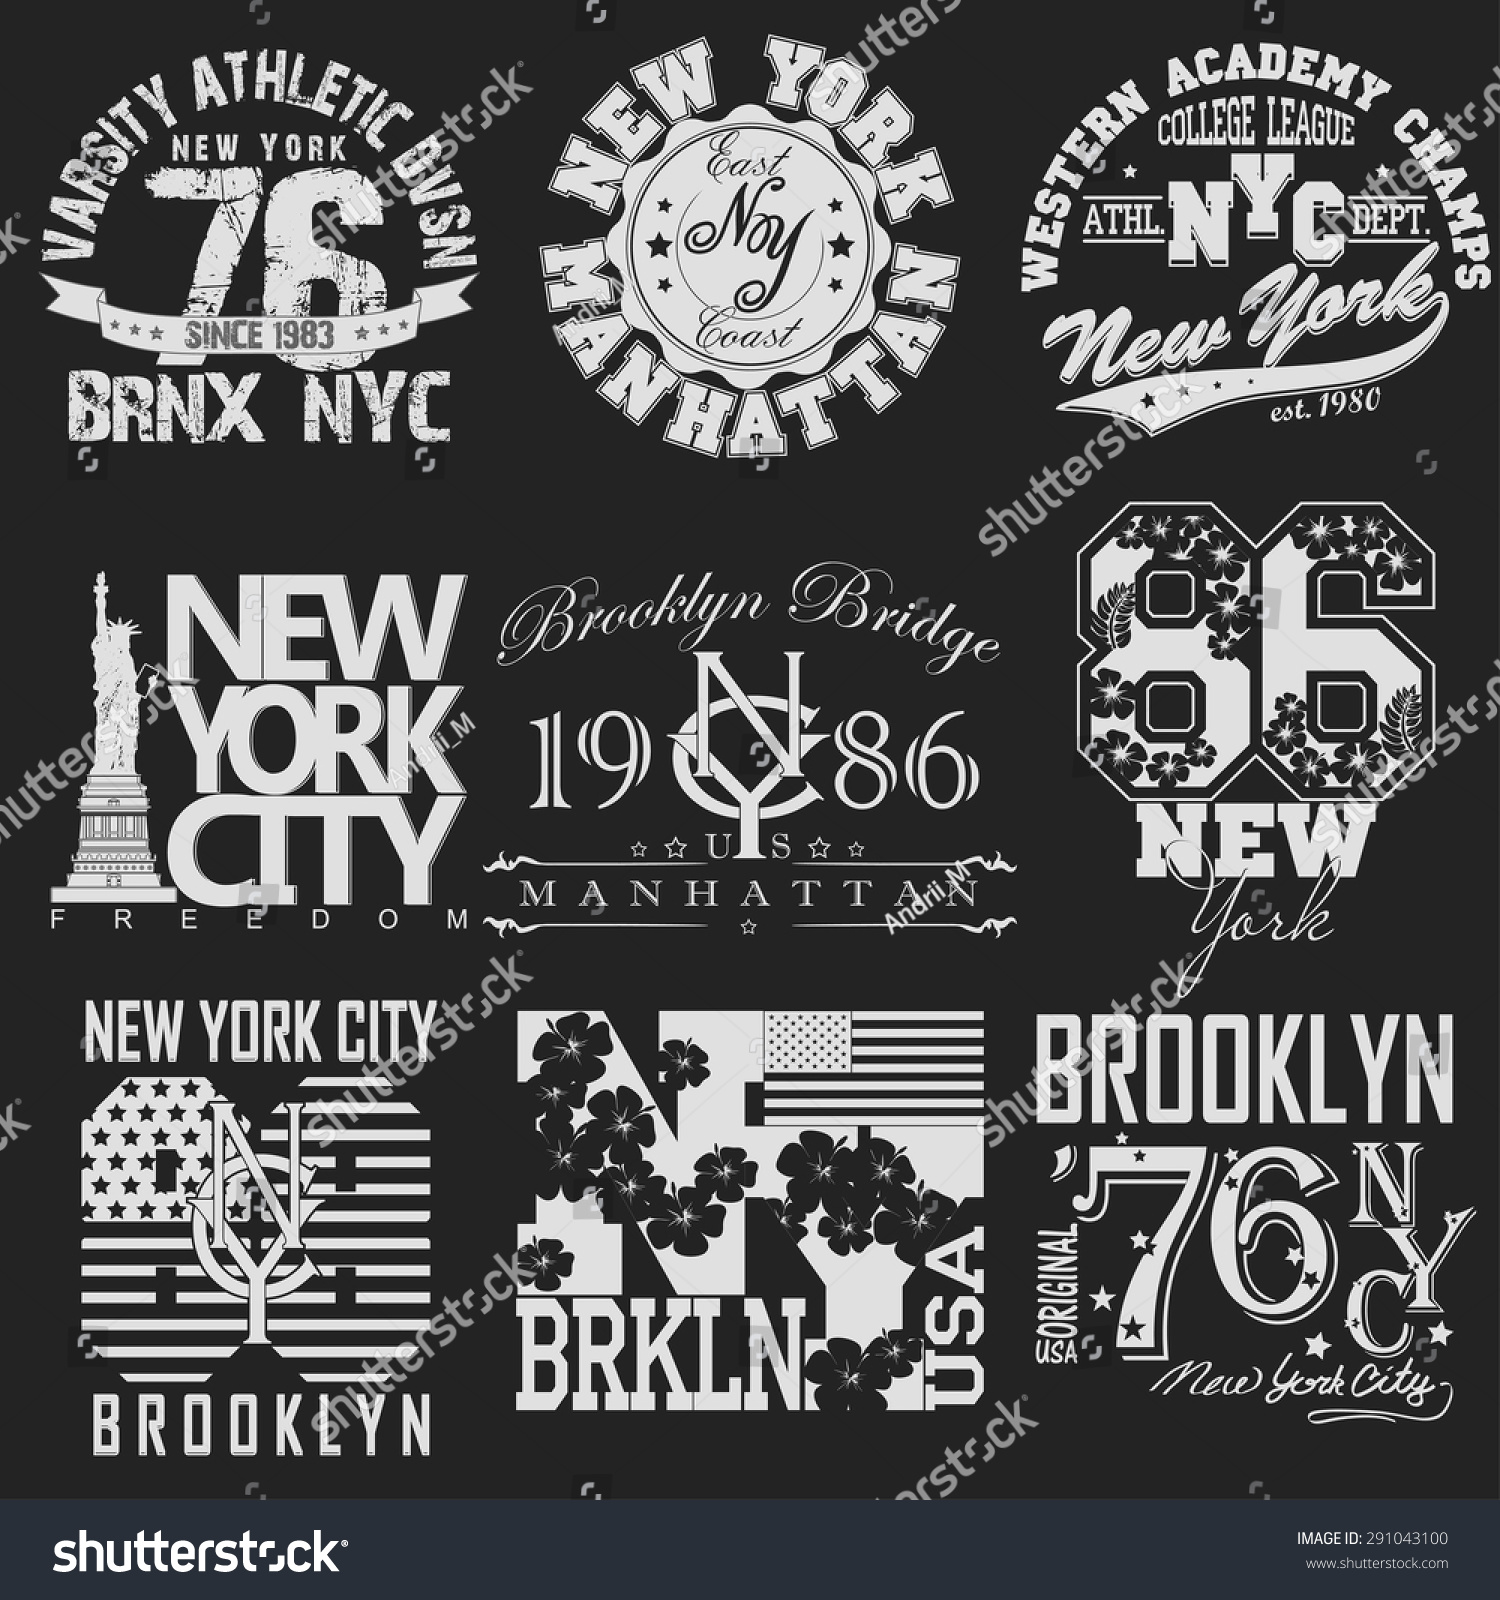 Shirt design typography